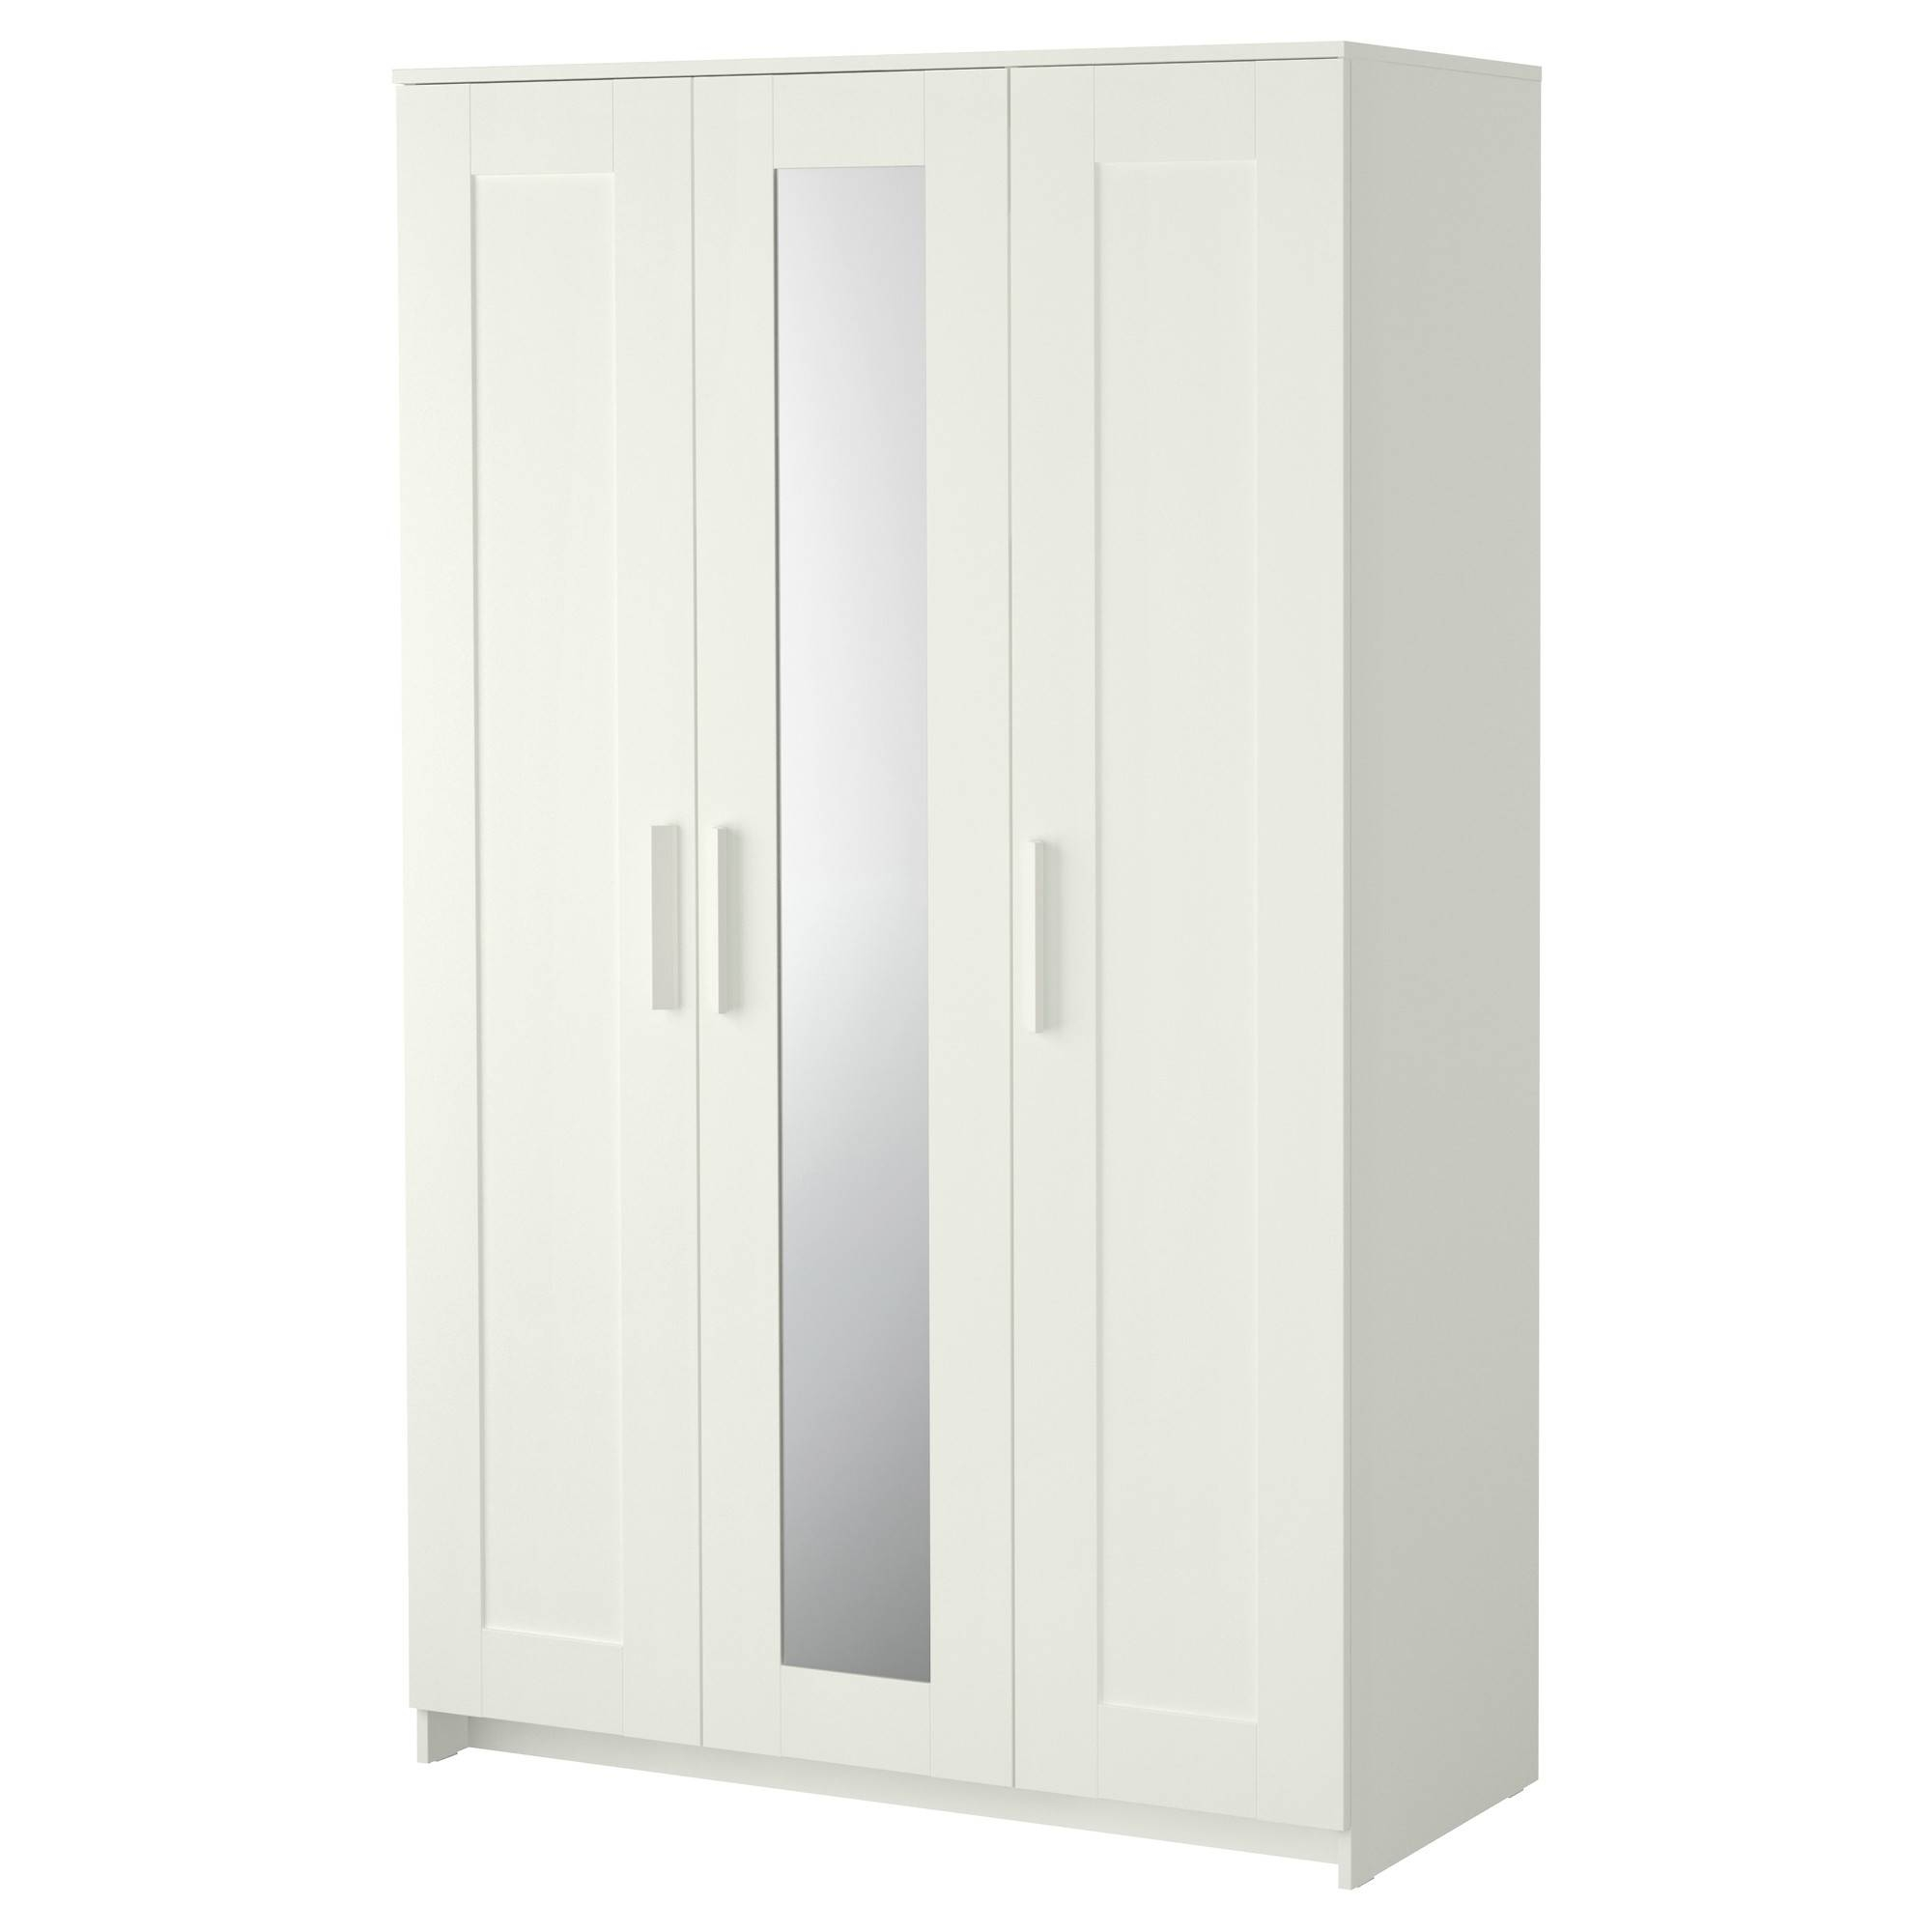 Brimnes Wardrobe With 3 Doors - White - Ikea inside 3 Door White Wardrobes (Image 3 of 30)